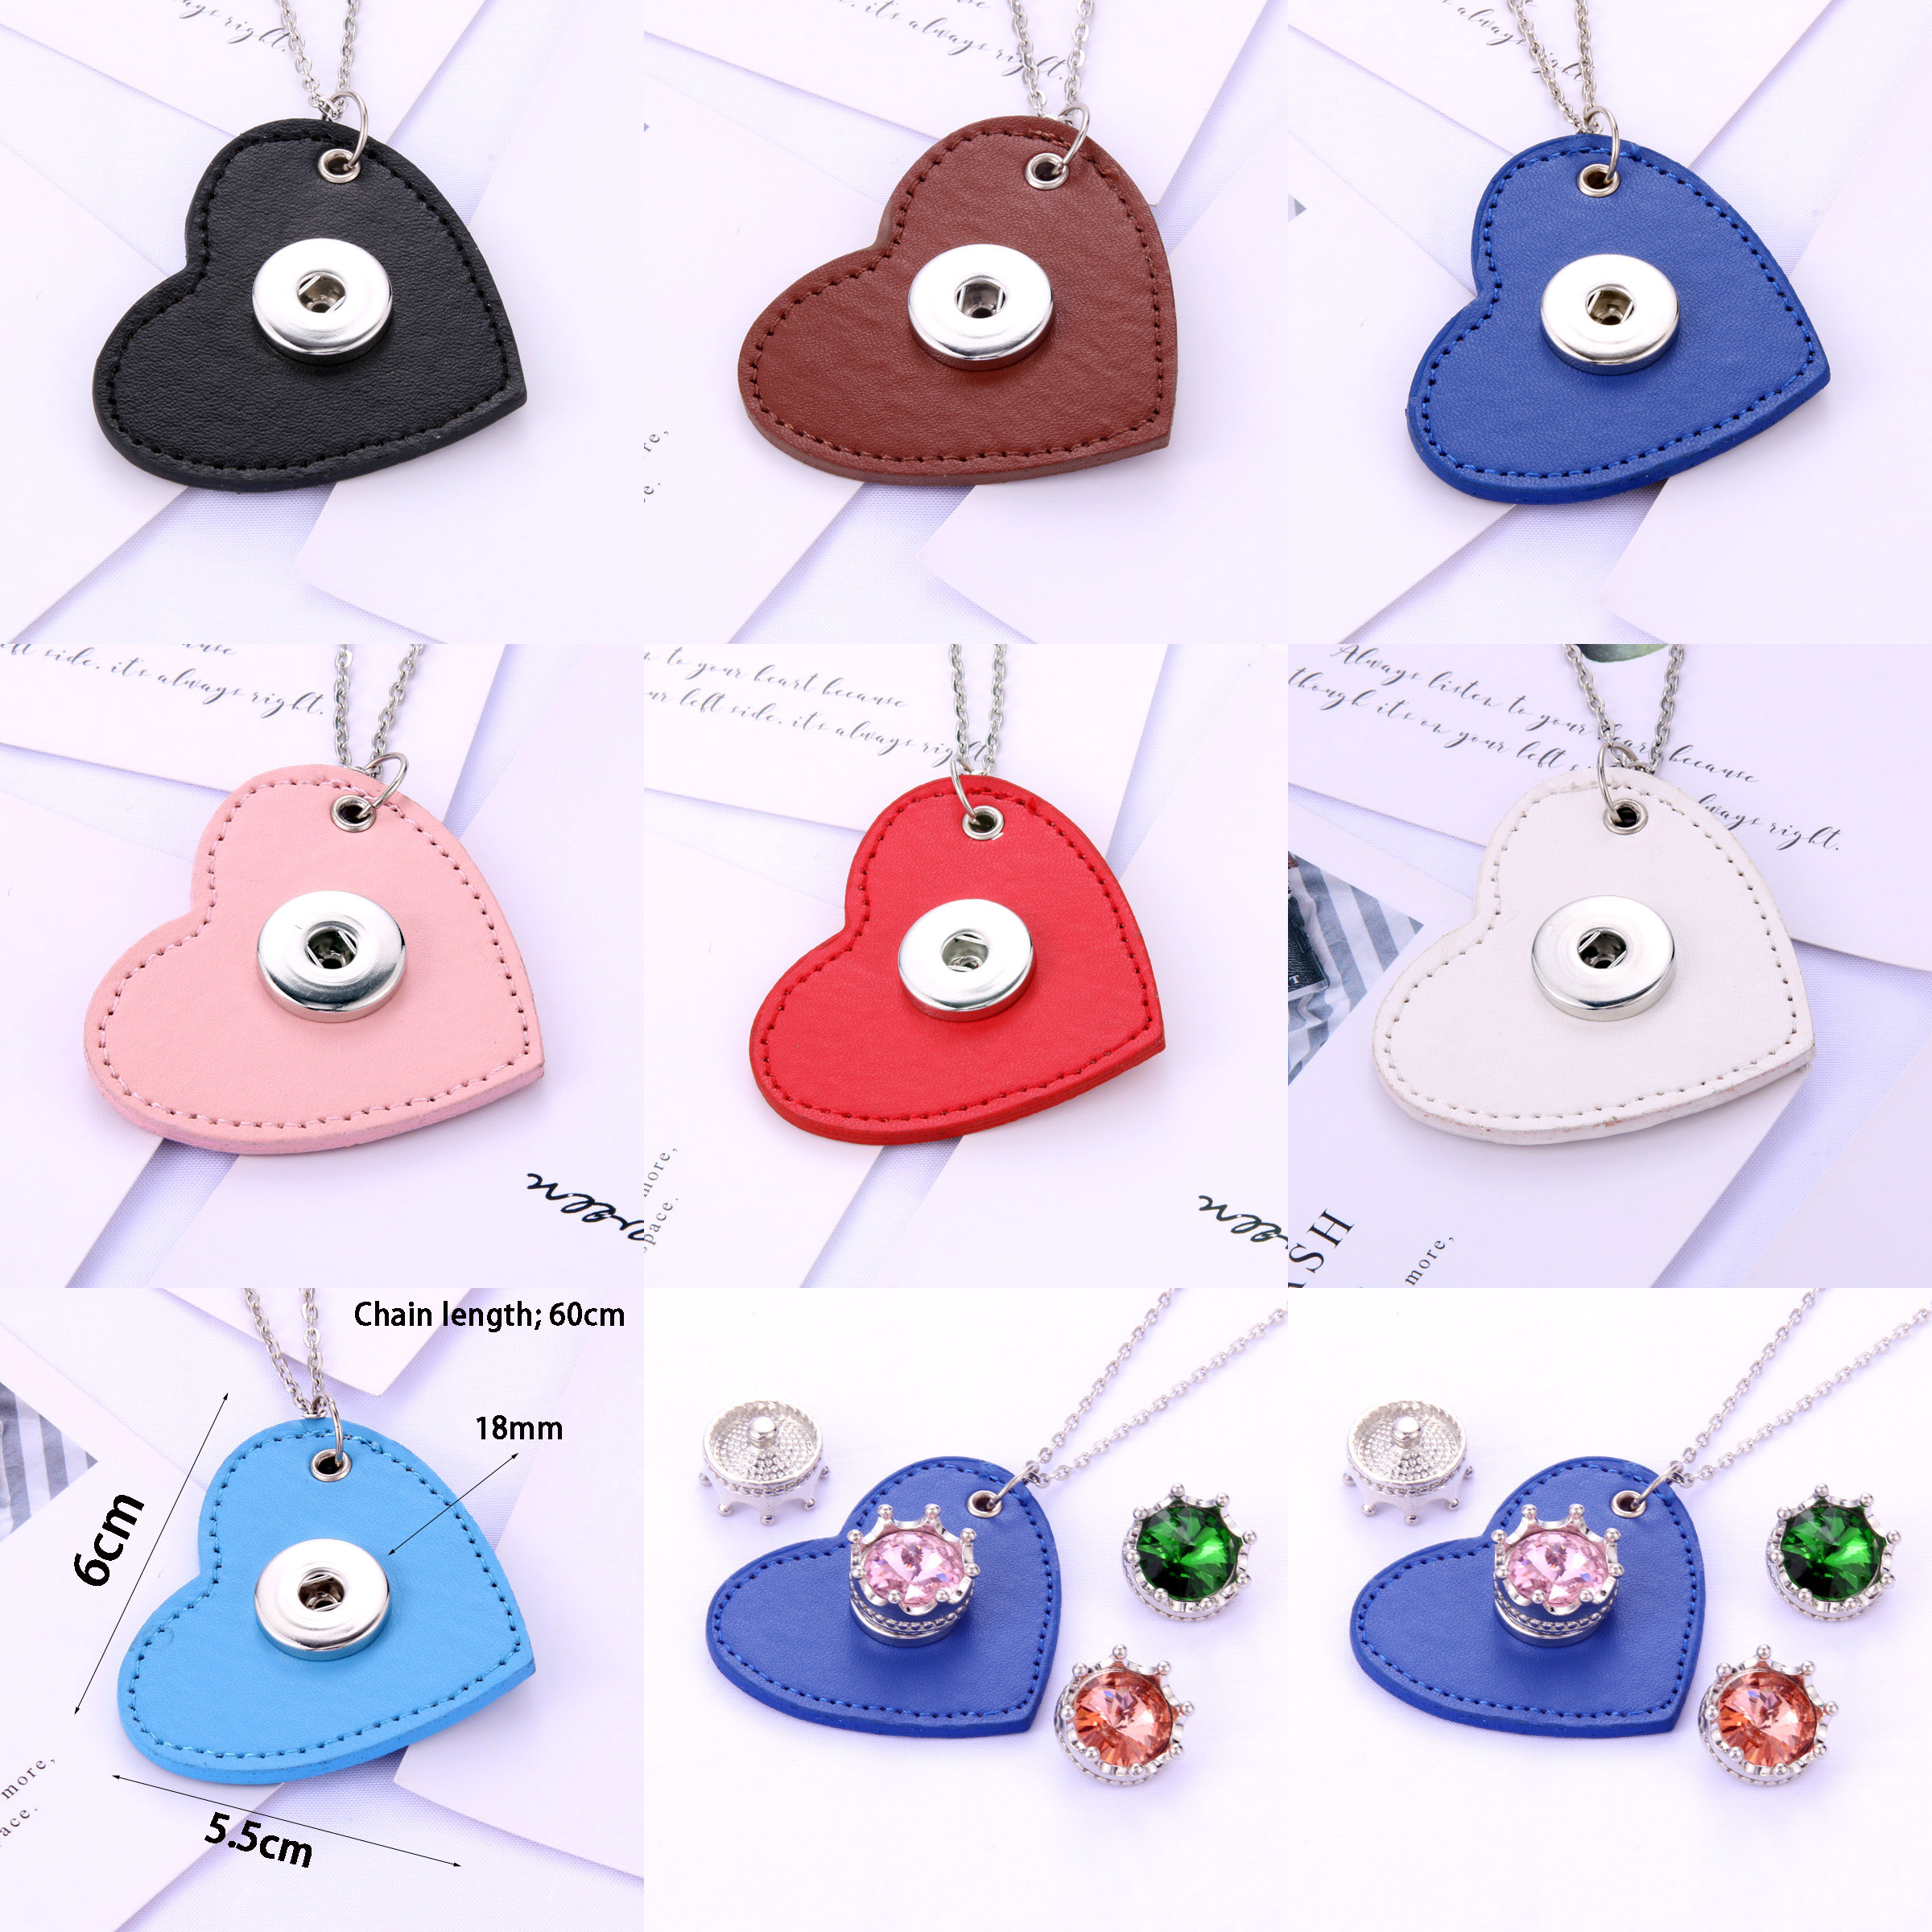 New Snap Jewelry 7-colors heart shape Leather Metal key chain Bag Snaps Pendant women Fit 20MM 18mm Snap Buttons DIY Jewelry